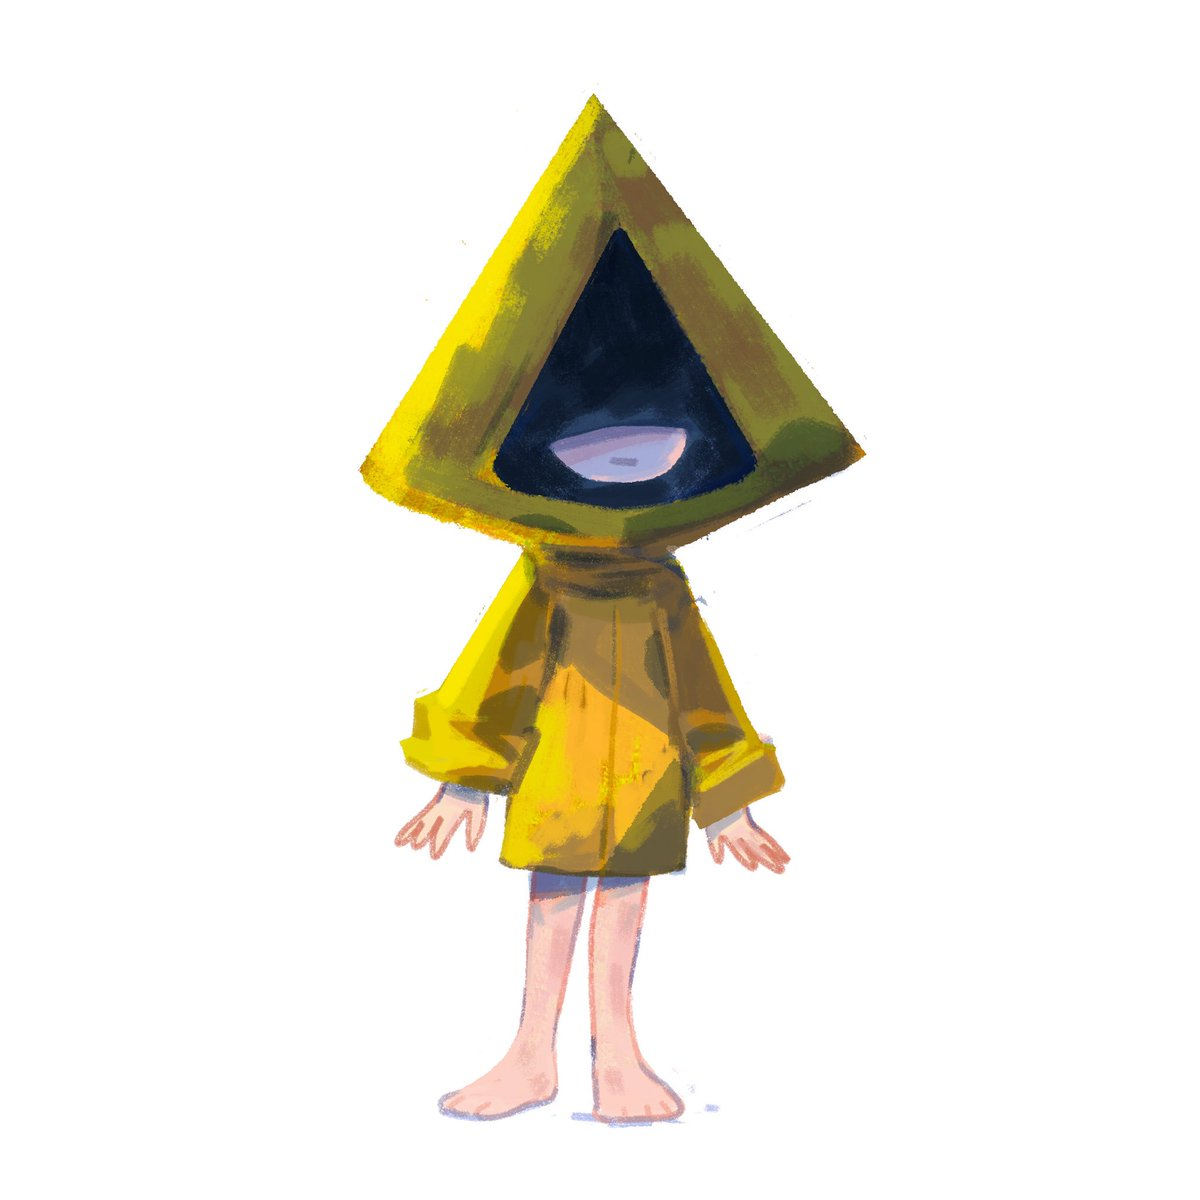 So excited for Little Nightmares 2! Here's a Six doodle :3  #Littlenightmares<br>http://pic.twitter.com/b0HujGg7jS